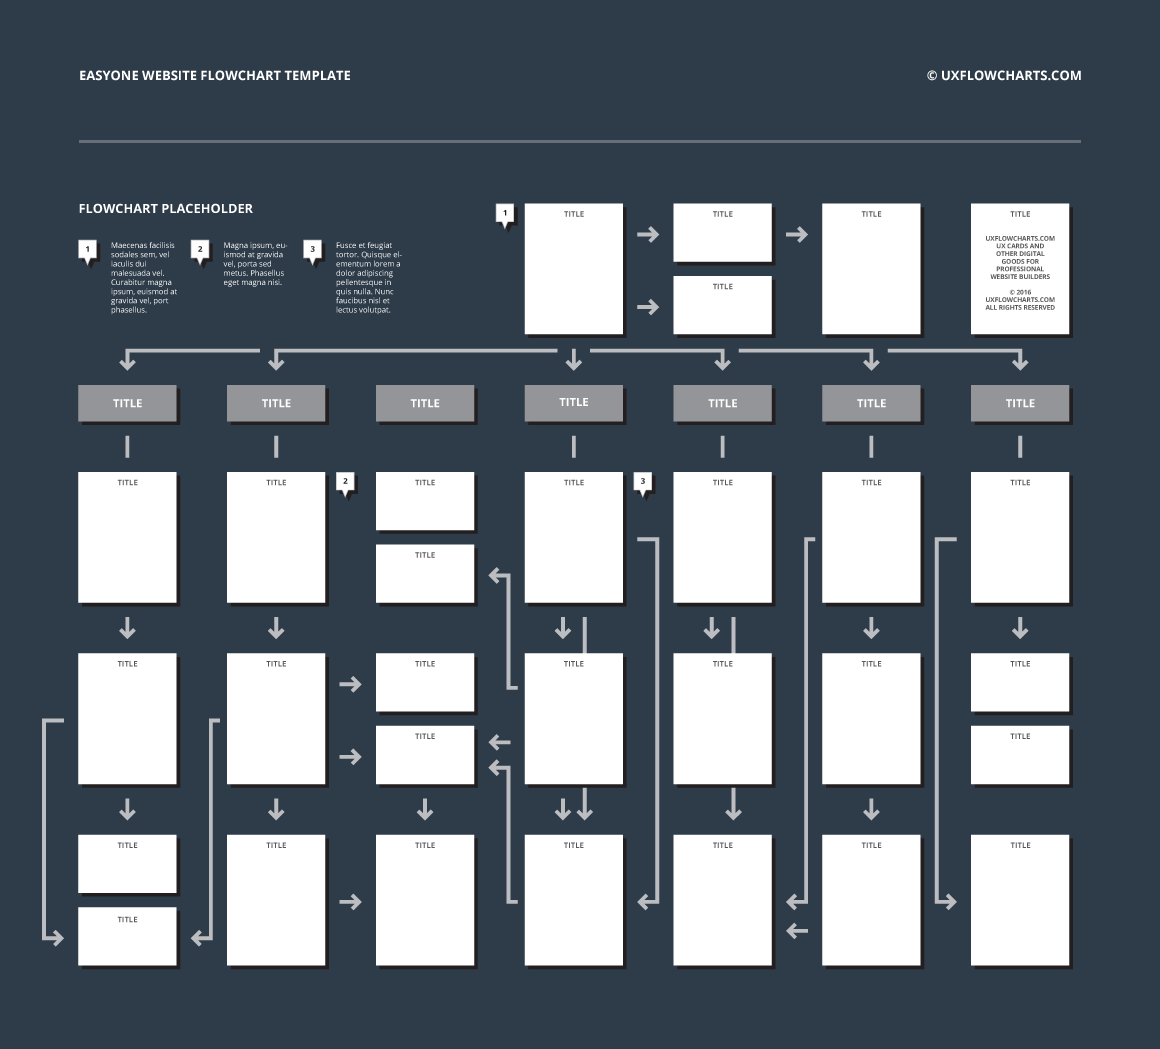 ux flowcharts ux cards and useful digital tools for ux planning easyone website flowchart. Black Bedroom Furniture Sets. Home Design Ideas